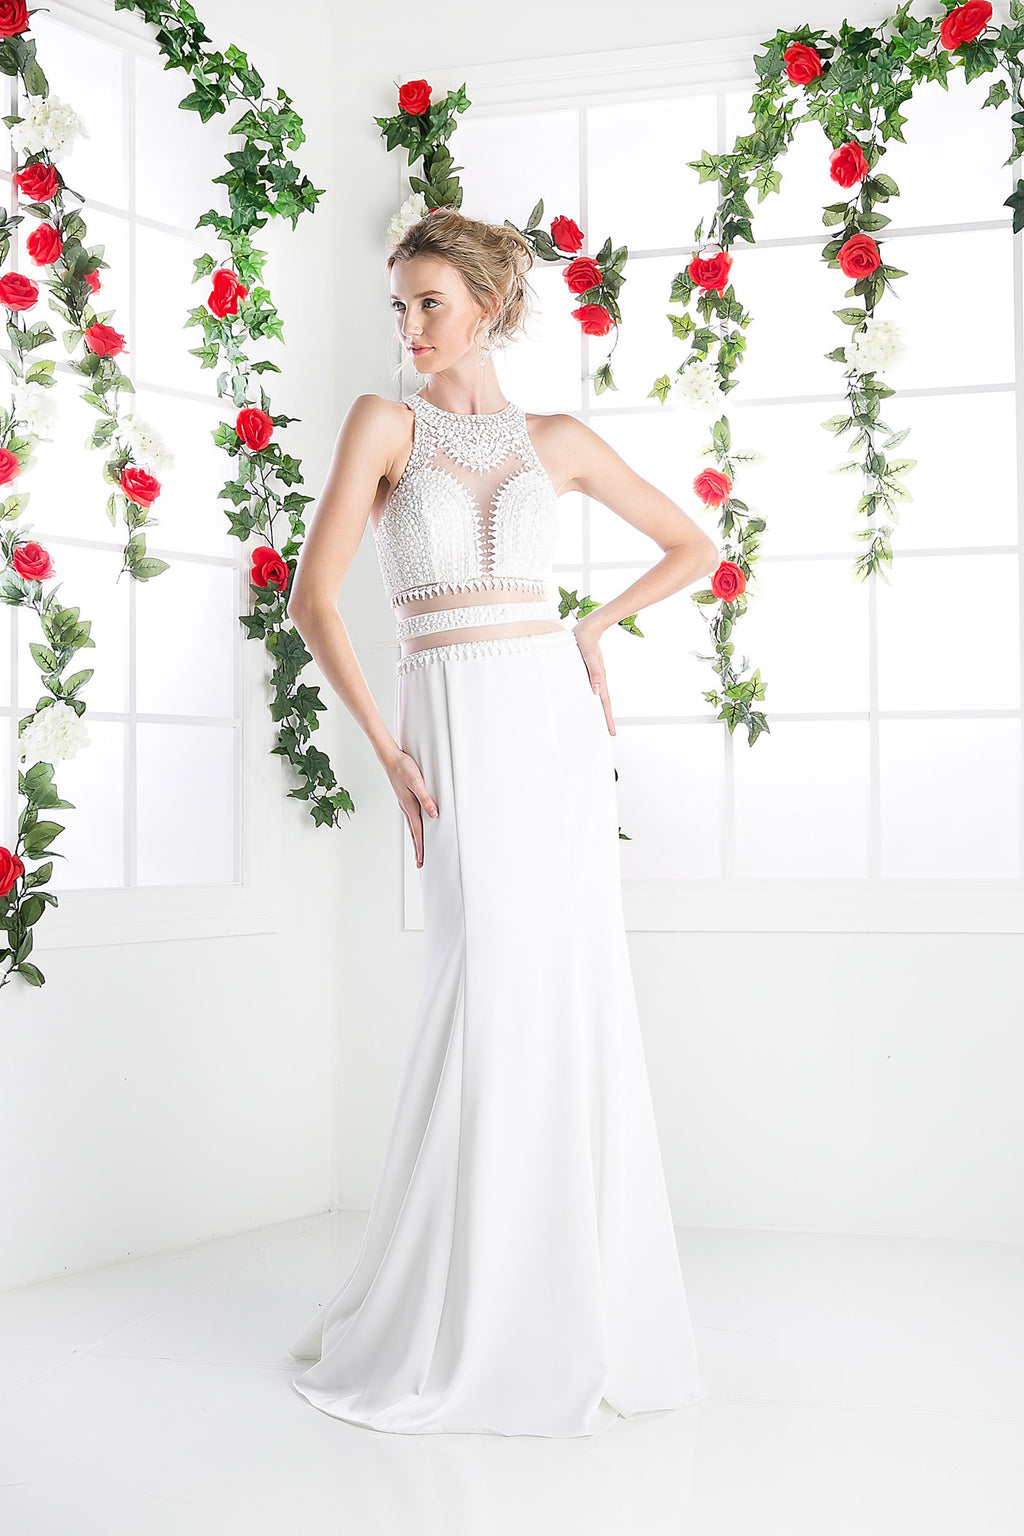 LONG CHIFFON DRESS WITH HIGH NECKLINE STYLE #CNDCR749 - NORMA REED - 1